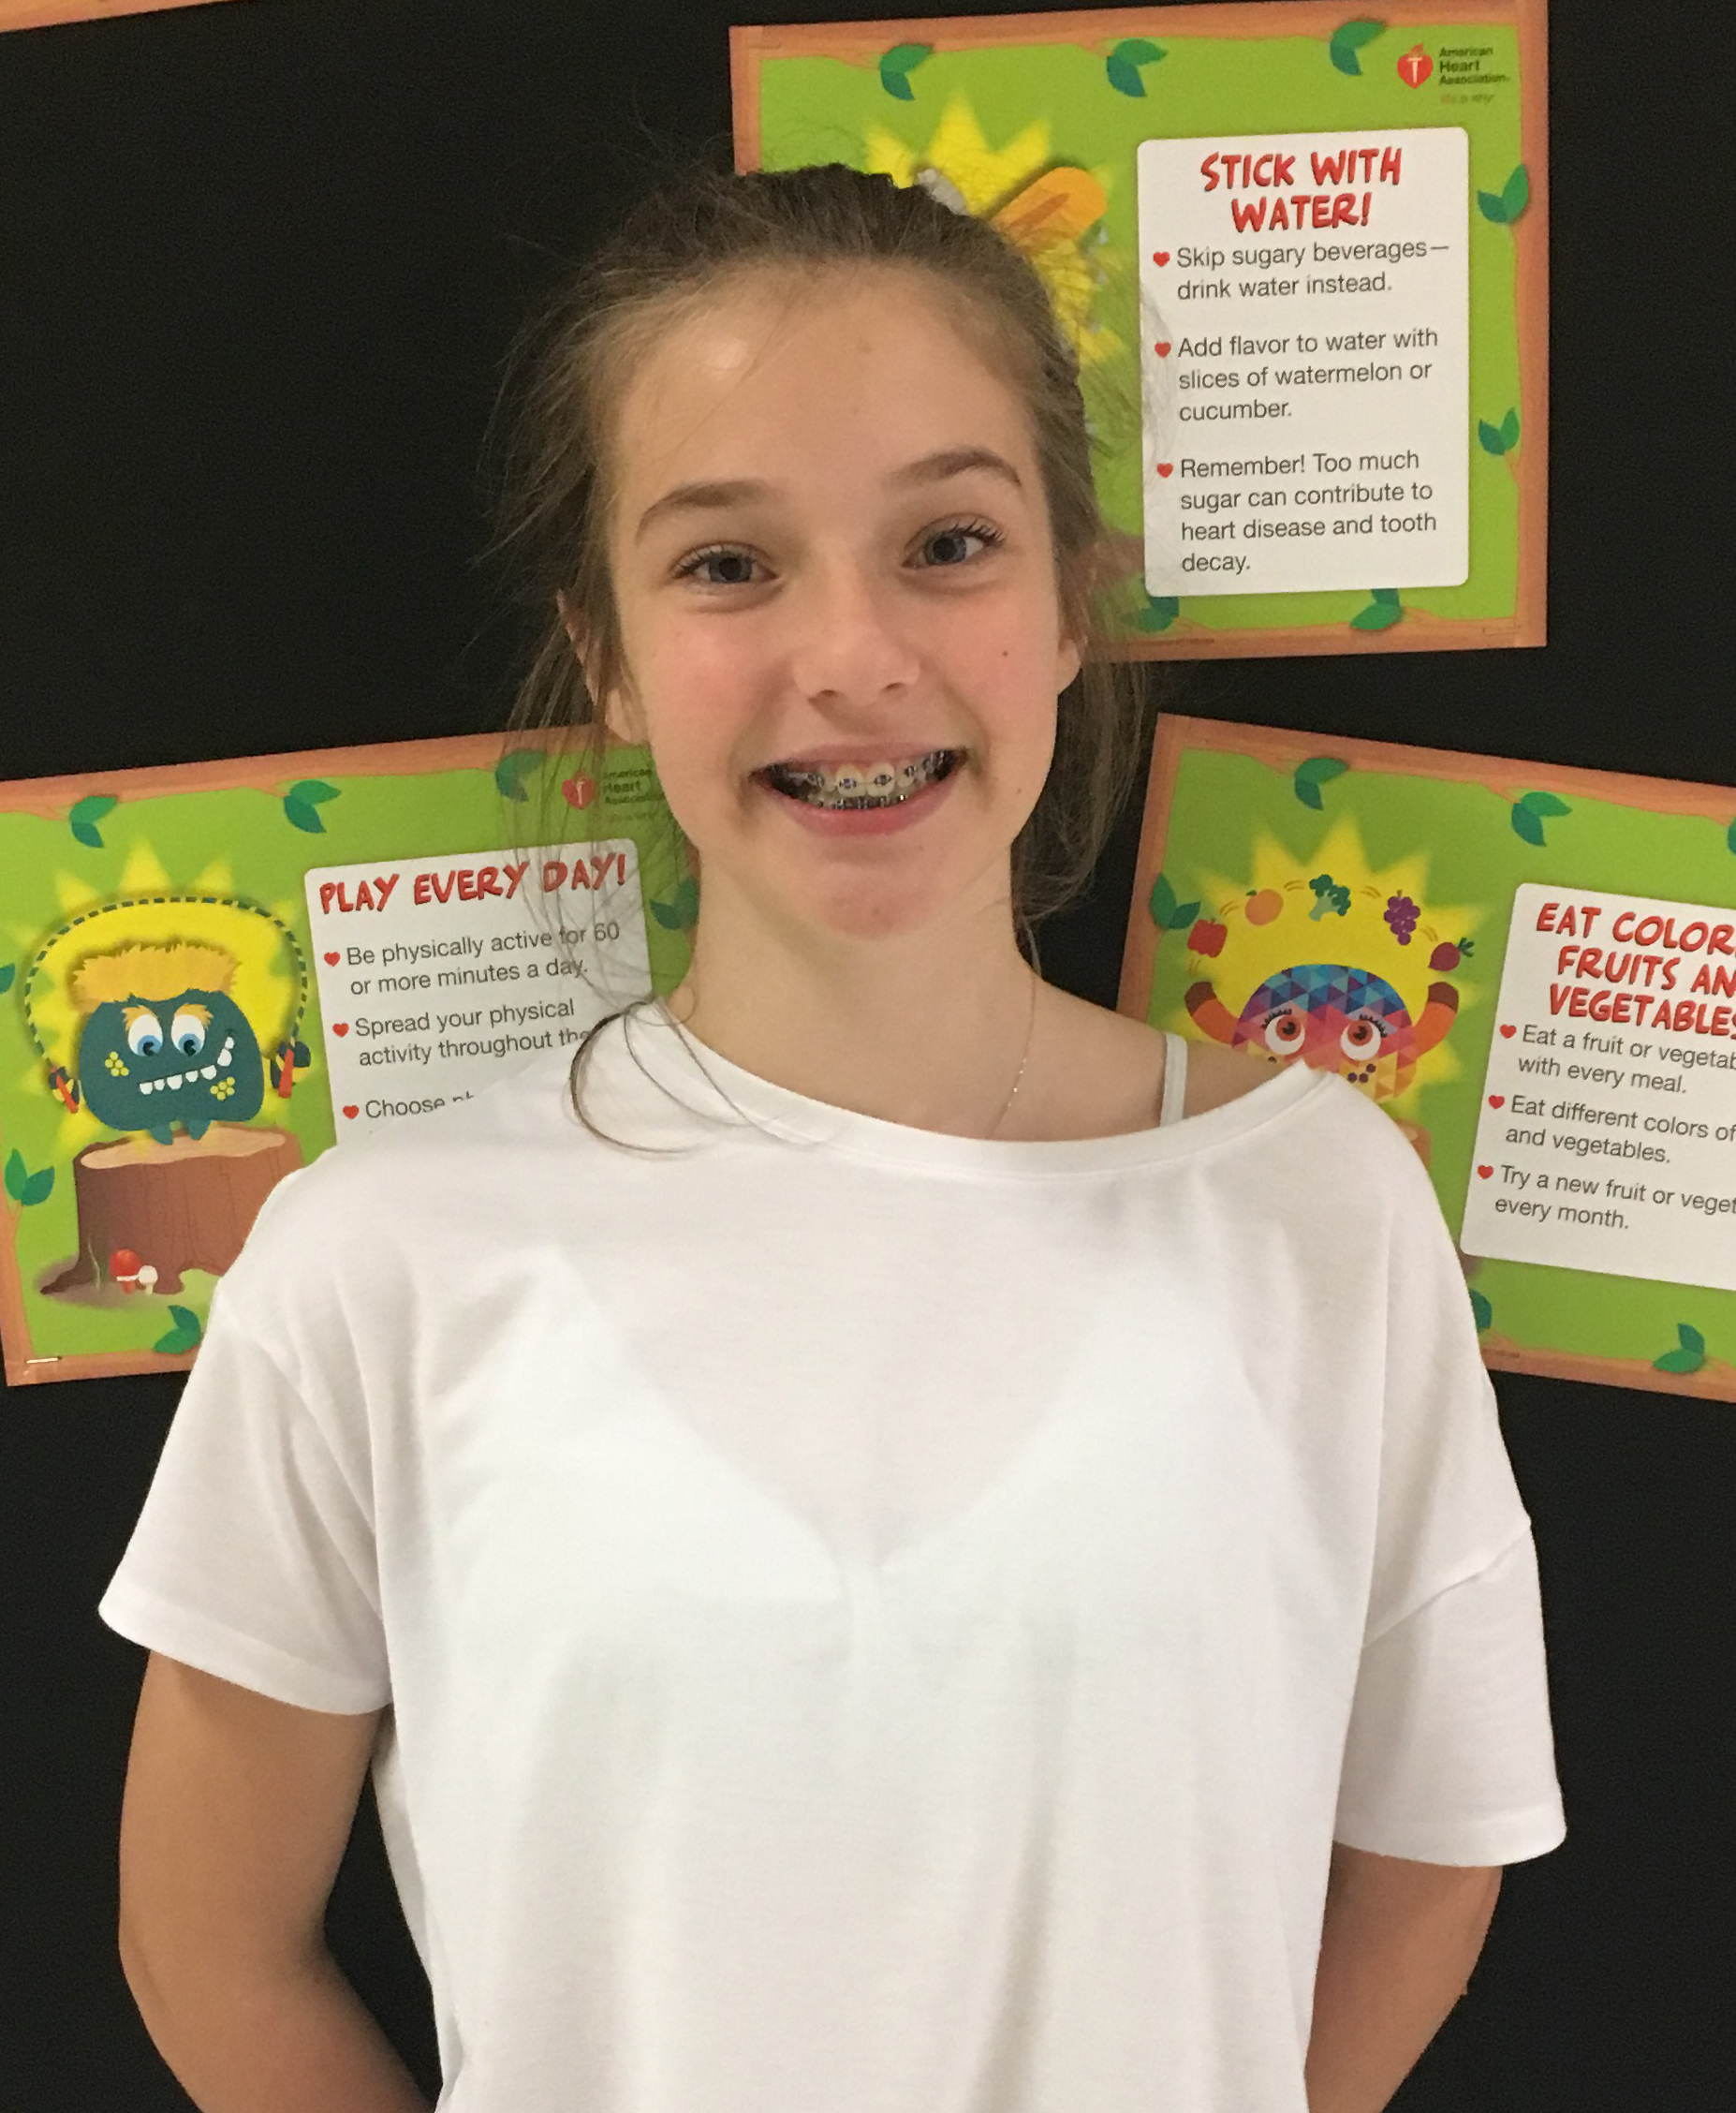 It's not healthy to be staring at the screen for a long time. Kids should be exercising. I recently started spending a lot more time outside – running and walking my dogs - instead of just sitting in front of a screen. I feel so much better!  Anna Age 12